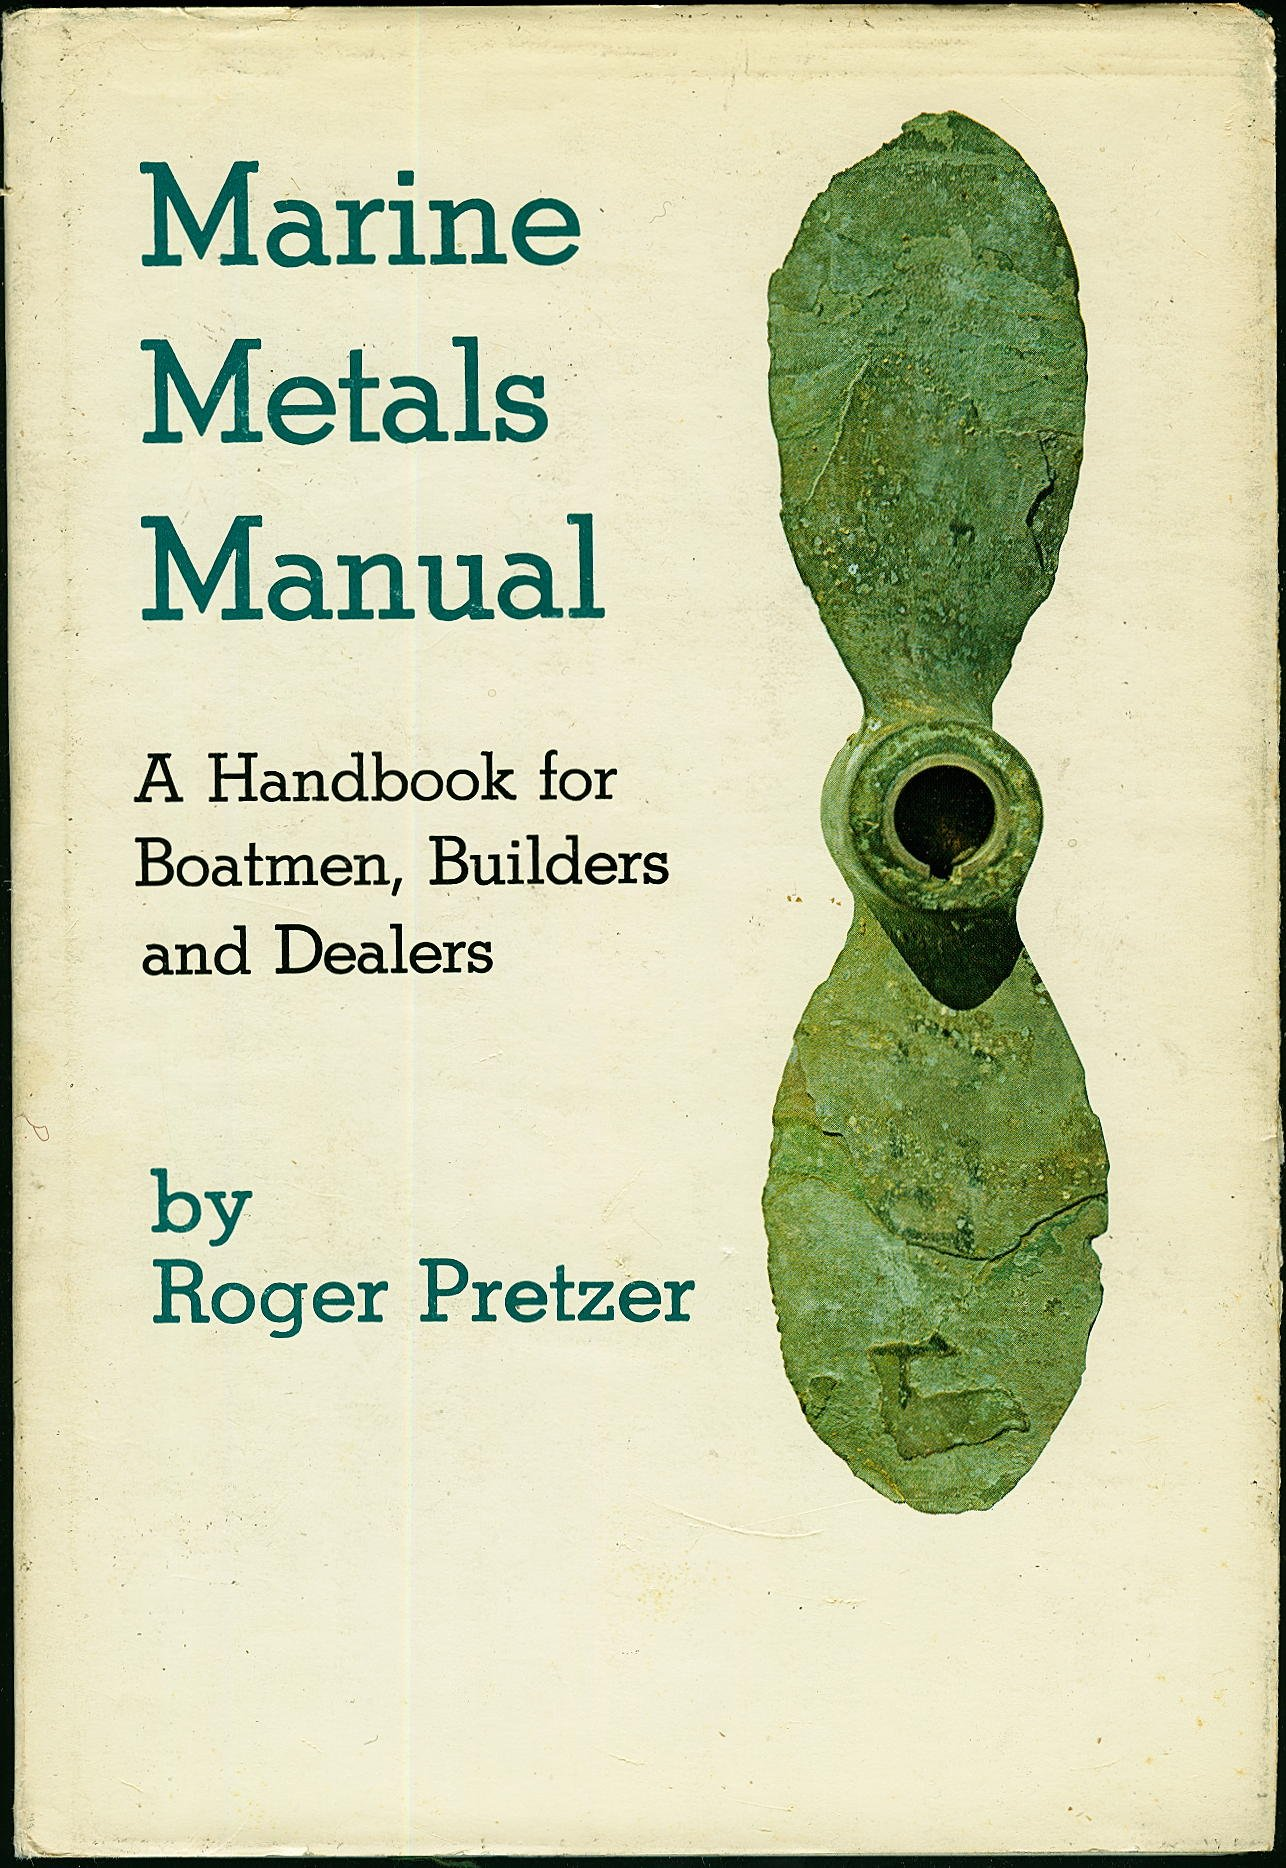 Amazon.in: Buy Marine Metals Manual: Handbook for Boatmen, Builders and  Dealers Book Online at Low Prices in India | Marine Metals Manual: Handbook  for ...